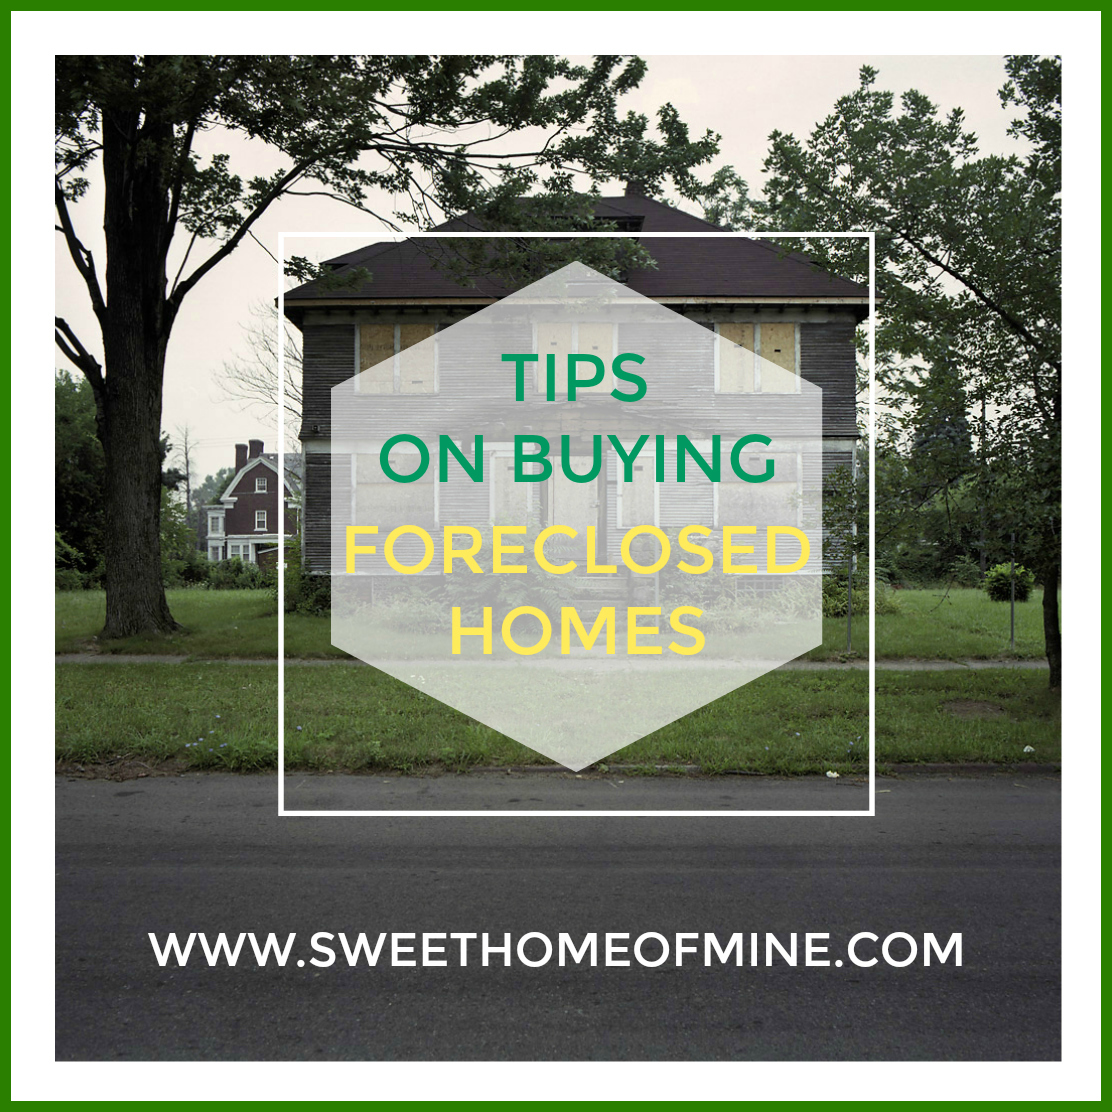 Tips for Buying Foreclosed Homes